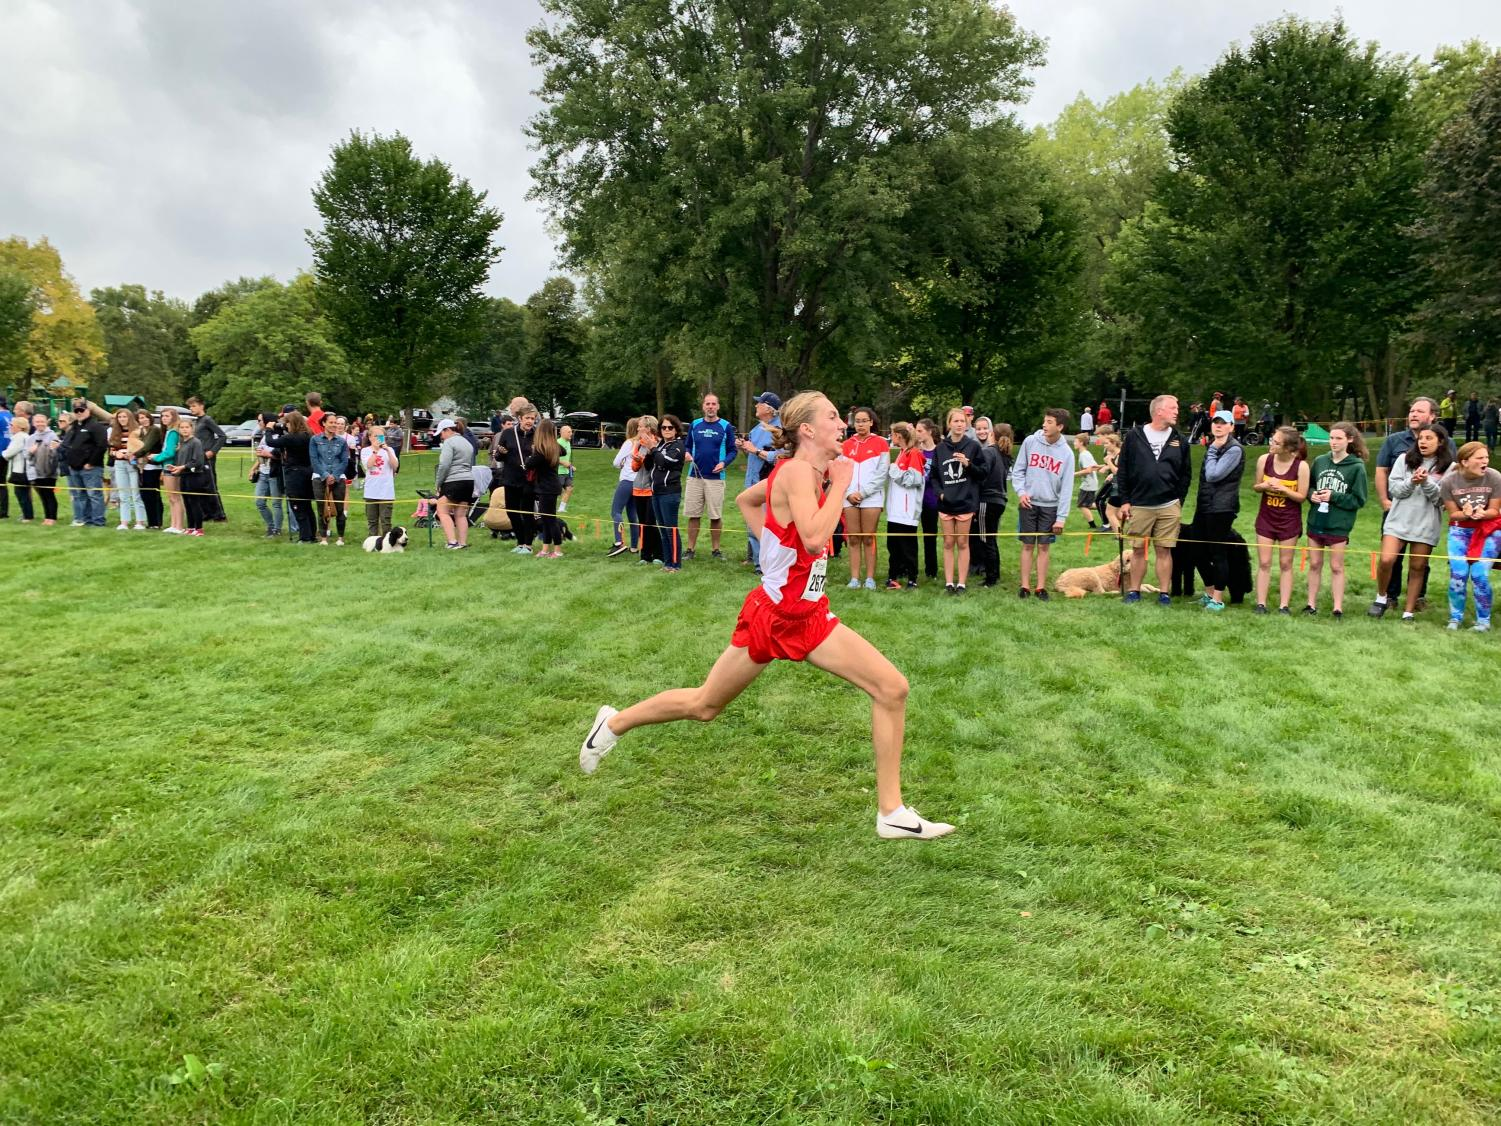 Walker Niebergall prior to crossing the finish line at BSM's home meet on September 8th.